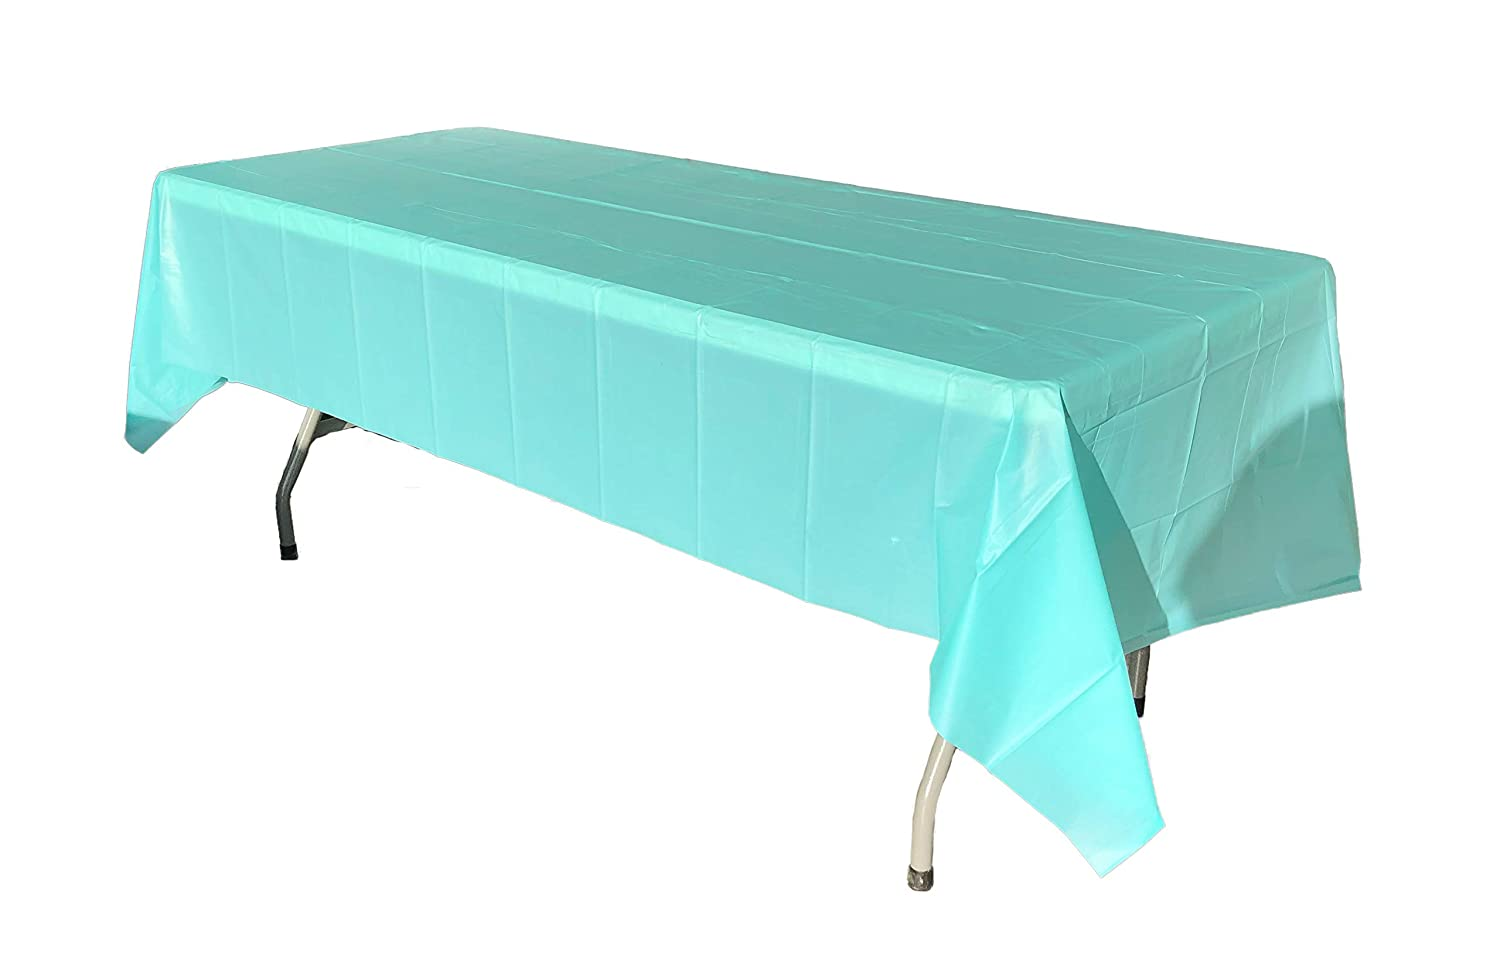 Robin's Egg Blue Plastic Table Covers or Table Skirt - 6 Pack (Rectangle) LACrafts